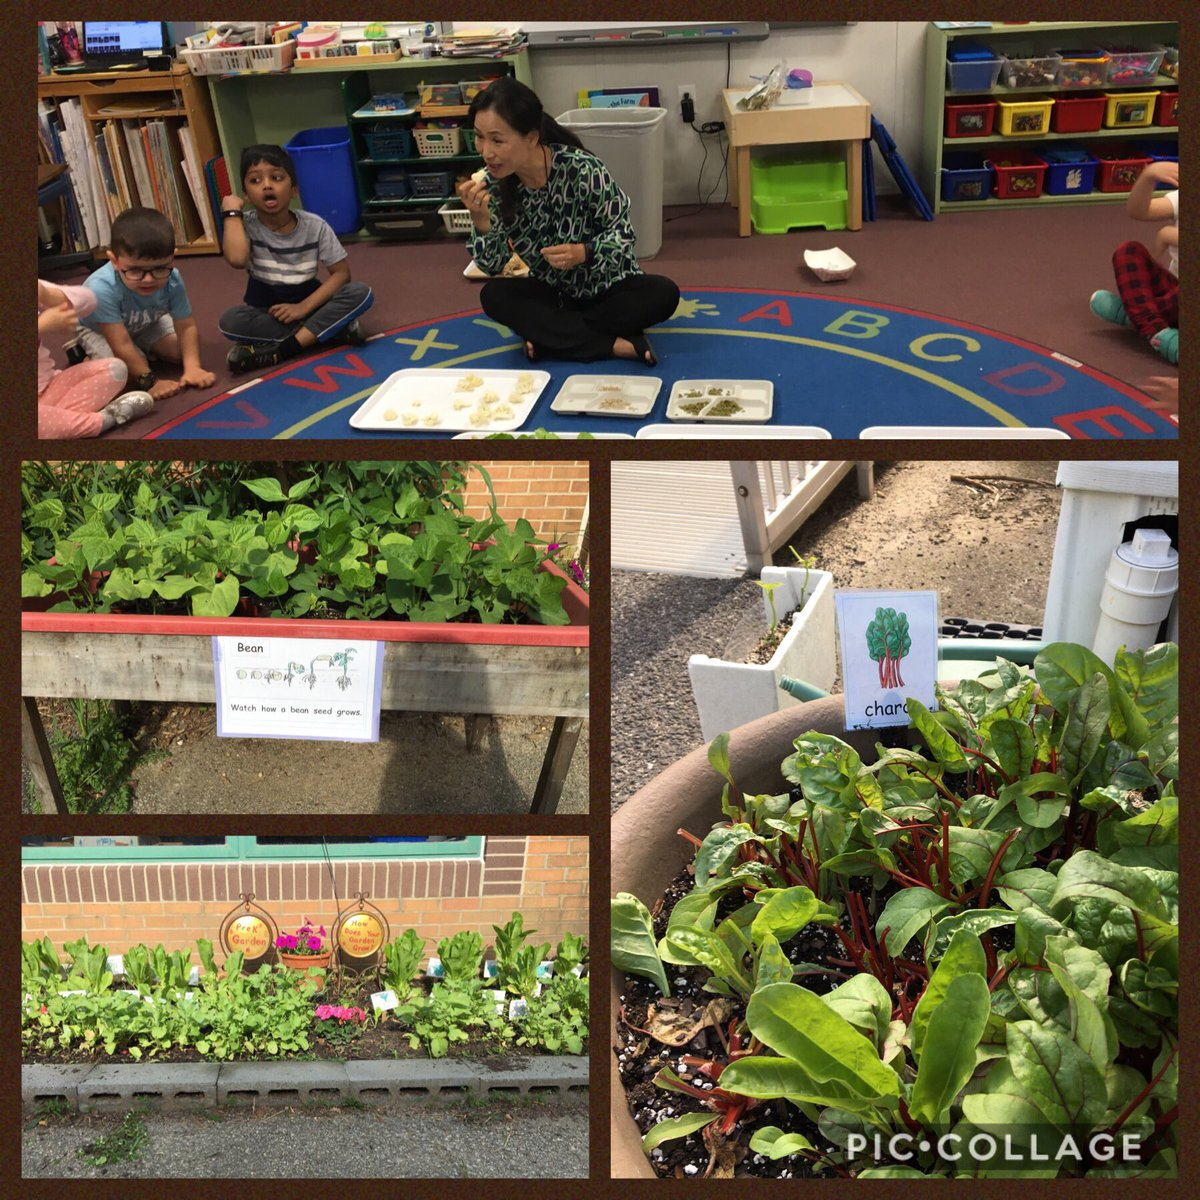 ms-kim-harvested-vegetables-and-shared-them-with-her-campbell-students-campbellaps-https-t-co-s1lpvztduj